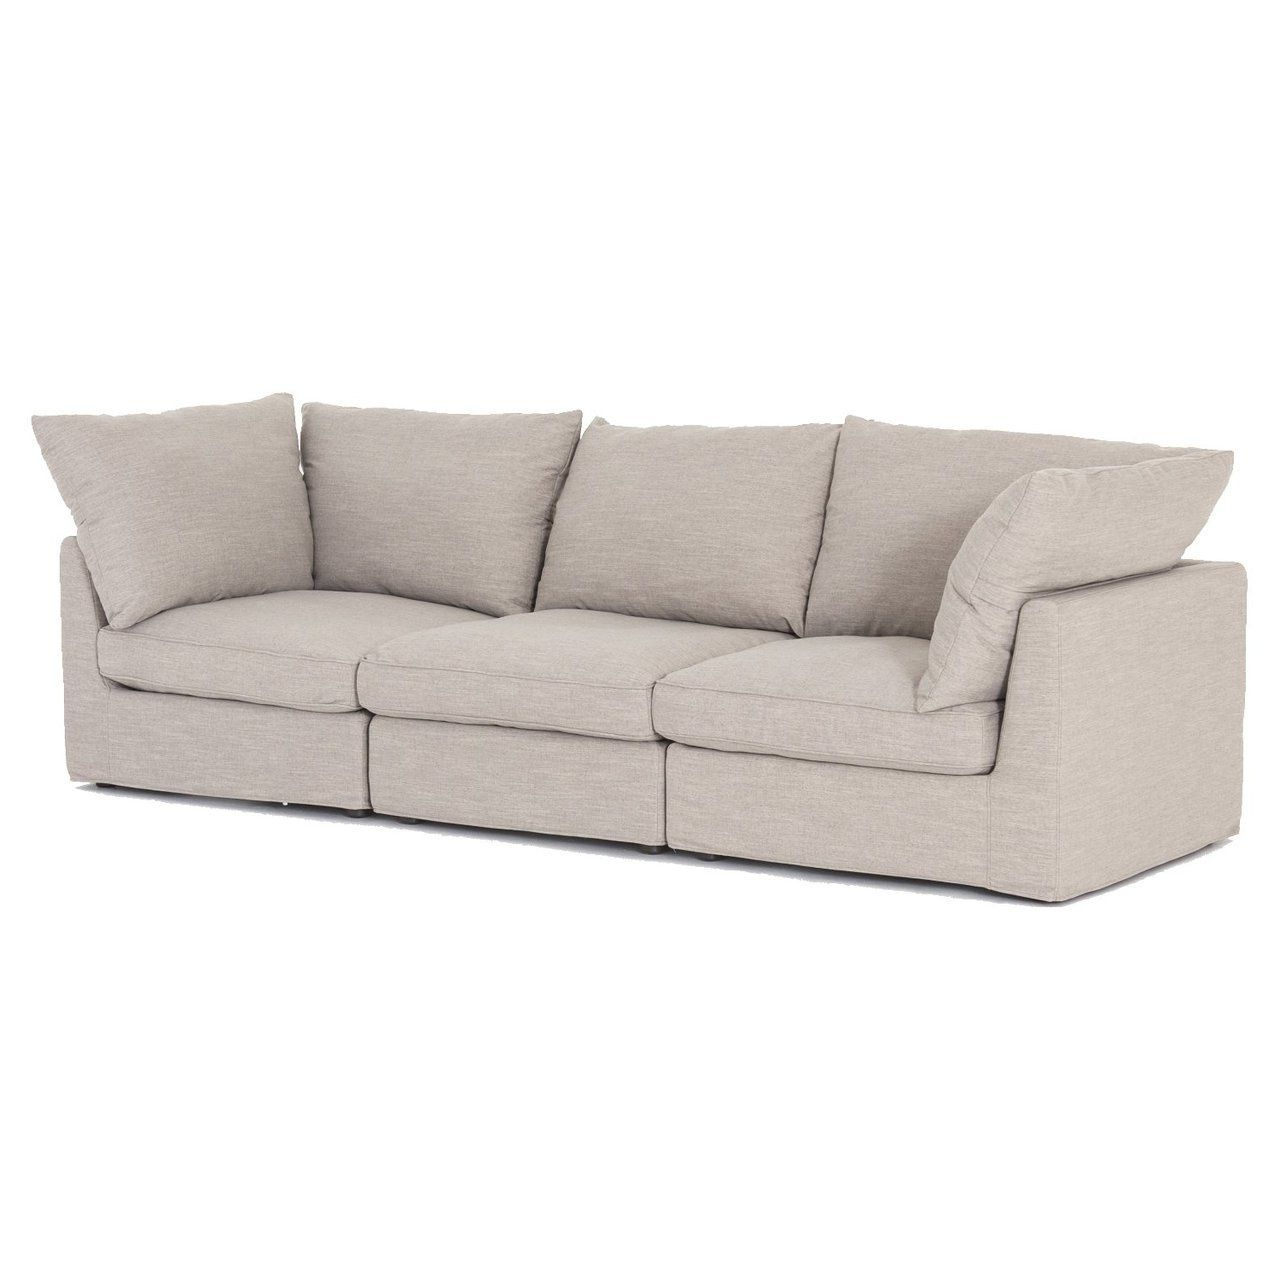 Well Known Harper Foam 3 Piece Sectional W/raf Chaise Inside Harper Foam 3 Piece Sectionals With Raf Chaise (View 5 of 20)